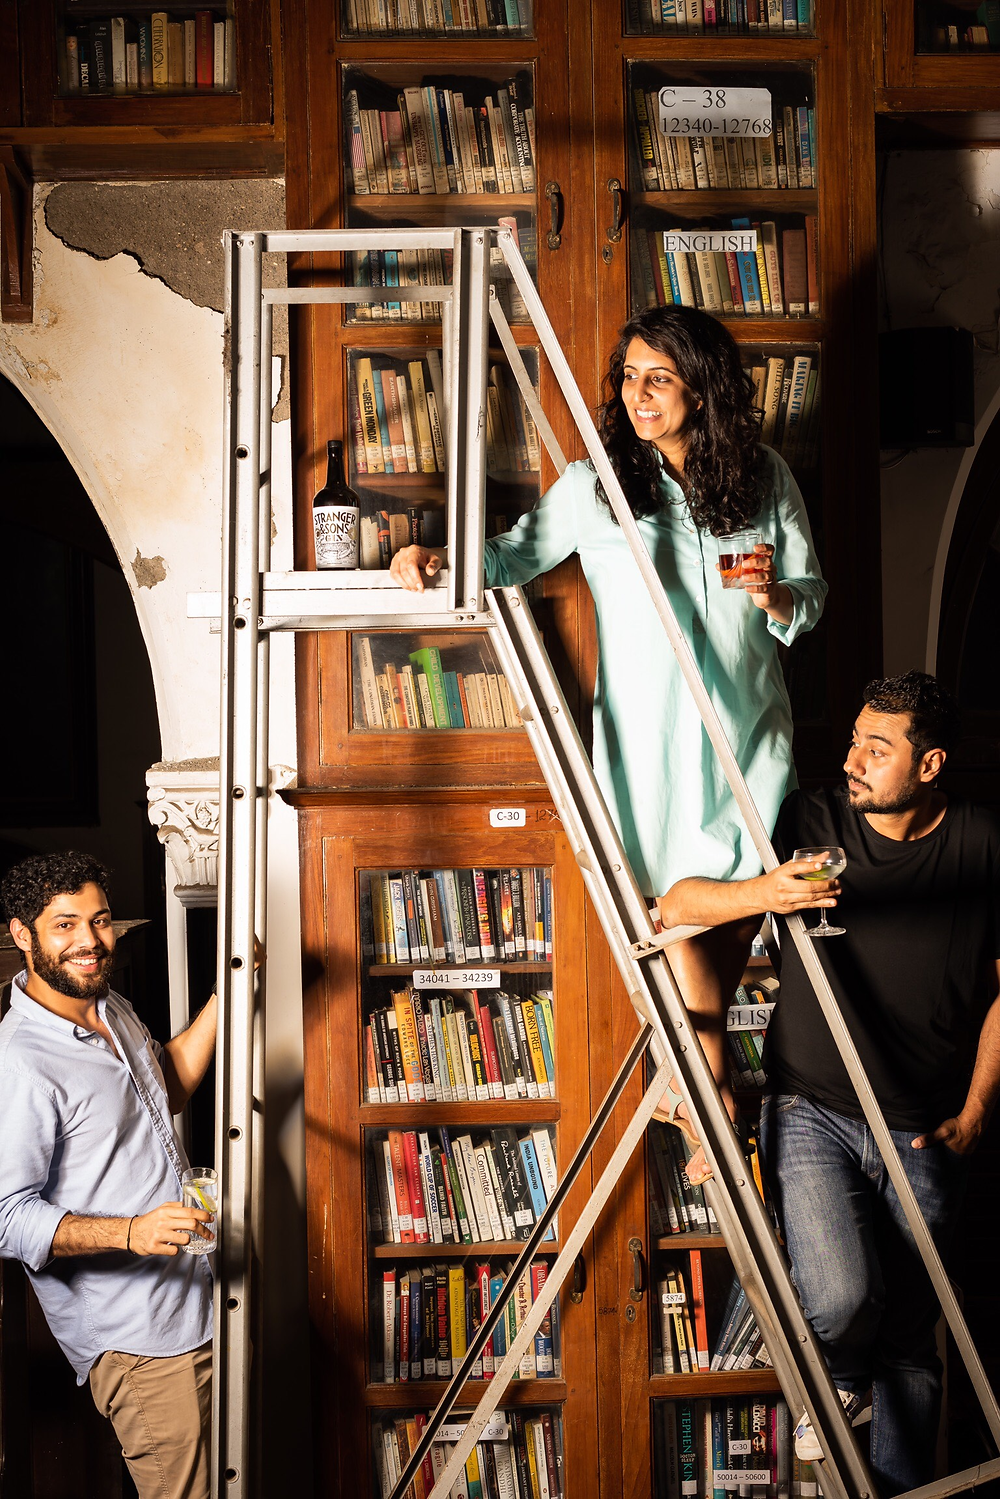 Founders of Stranger & Sons Gin - Vidur Gupta, Sakshi Saigal and Rahul Mehra